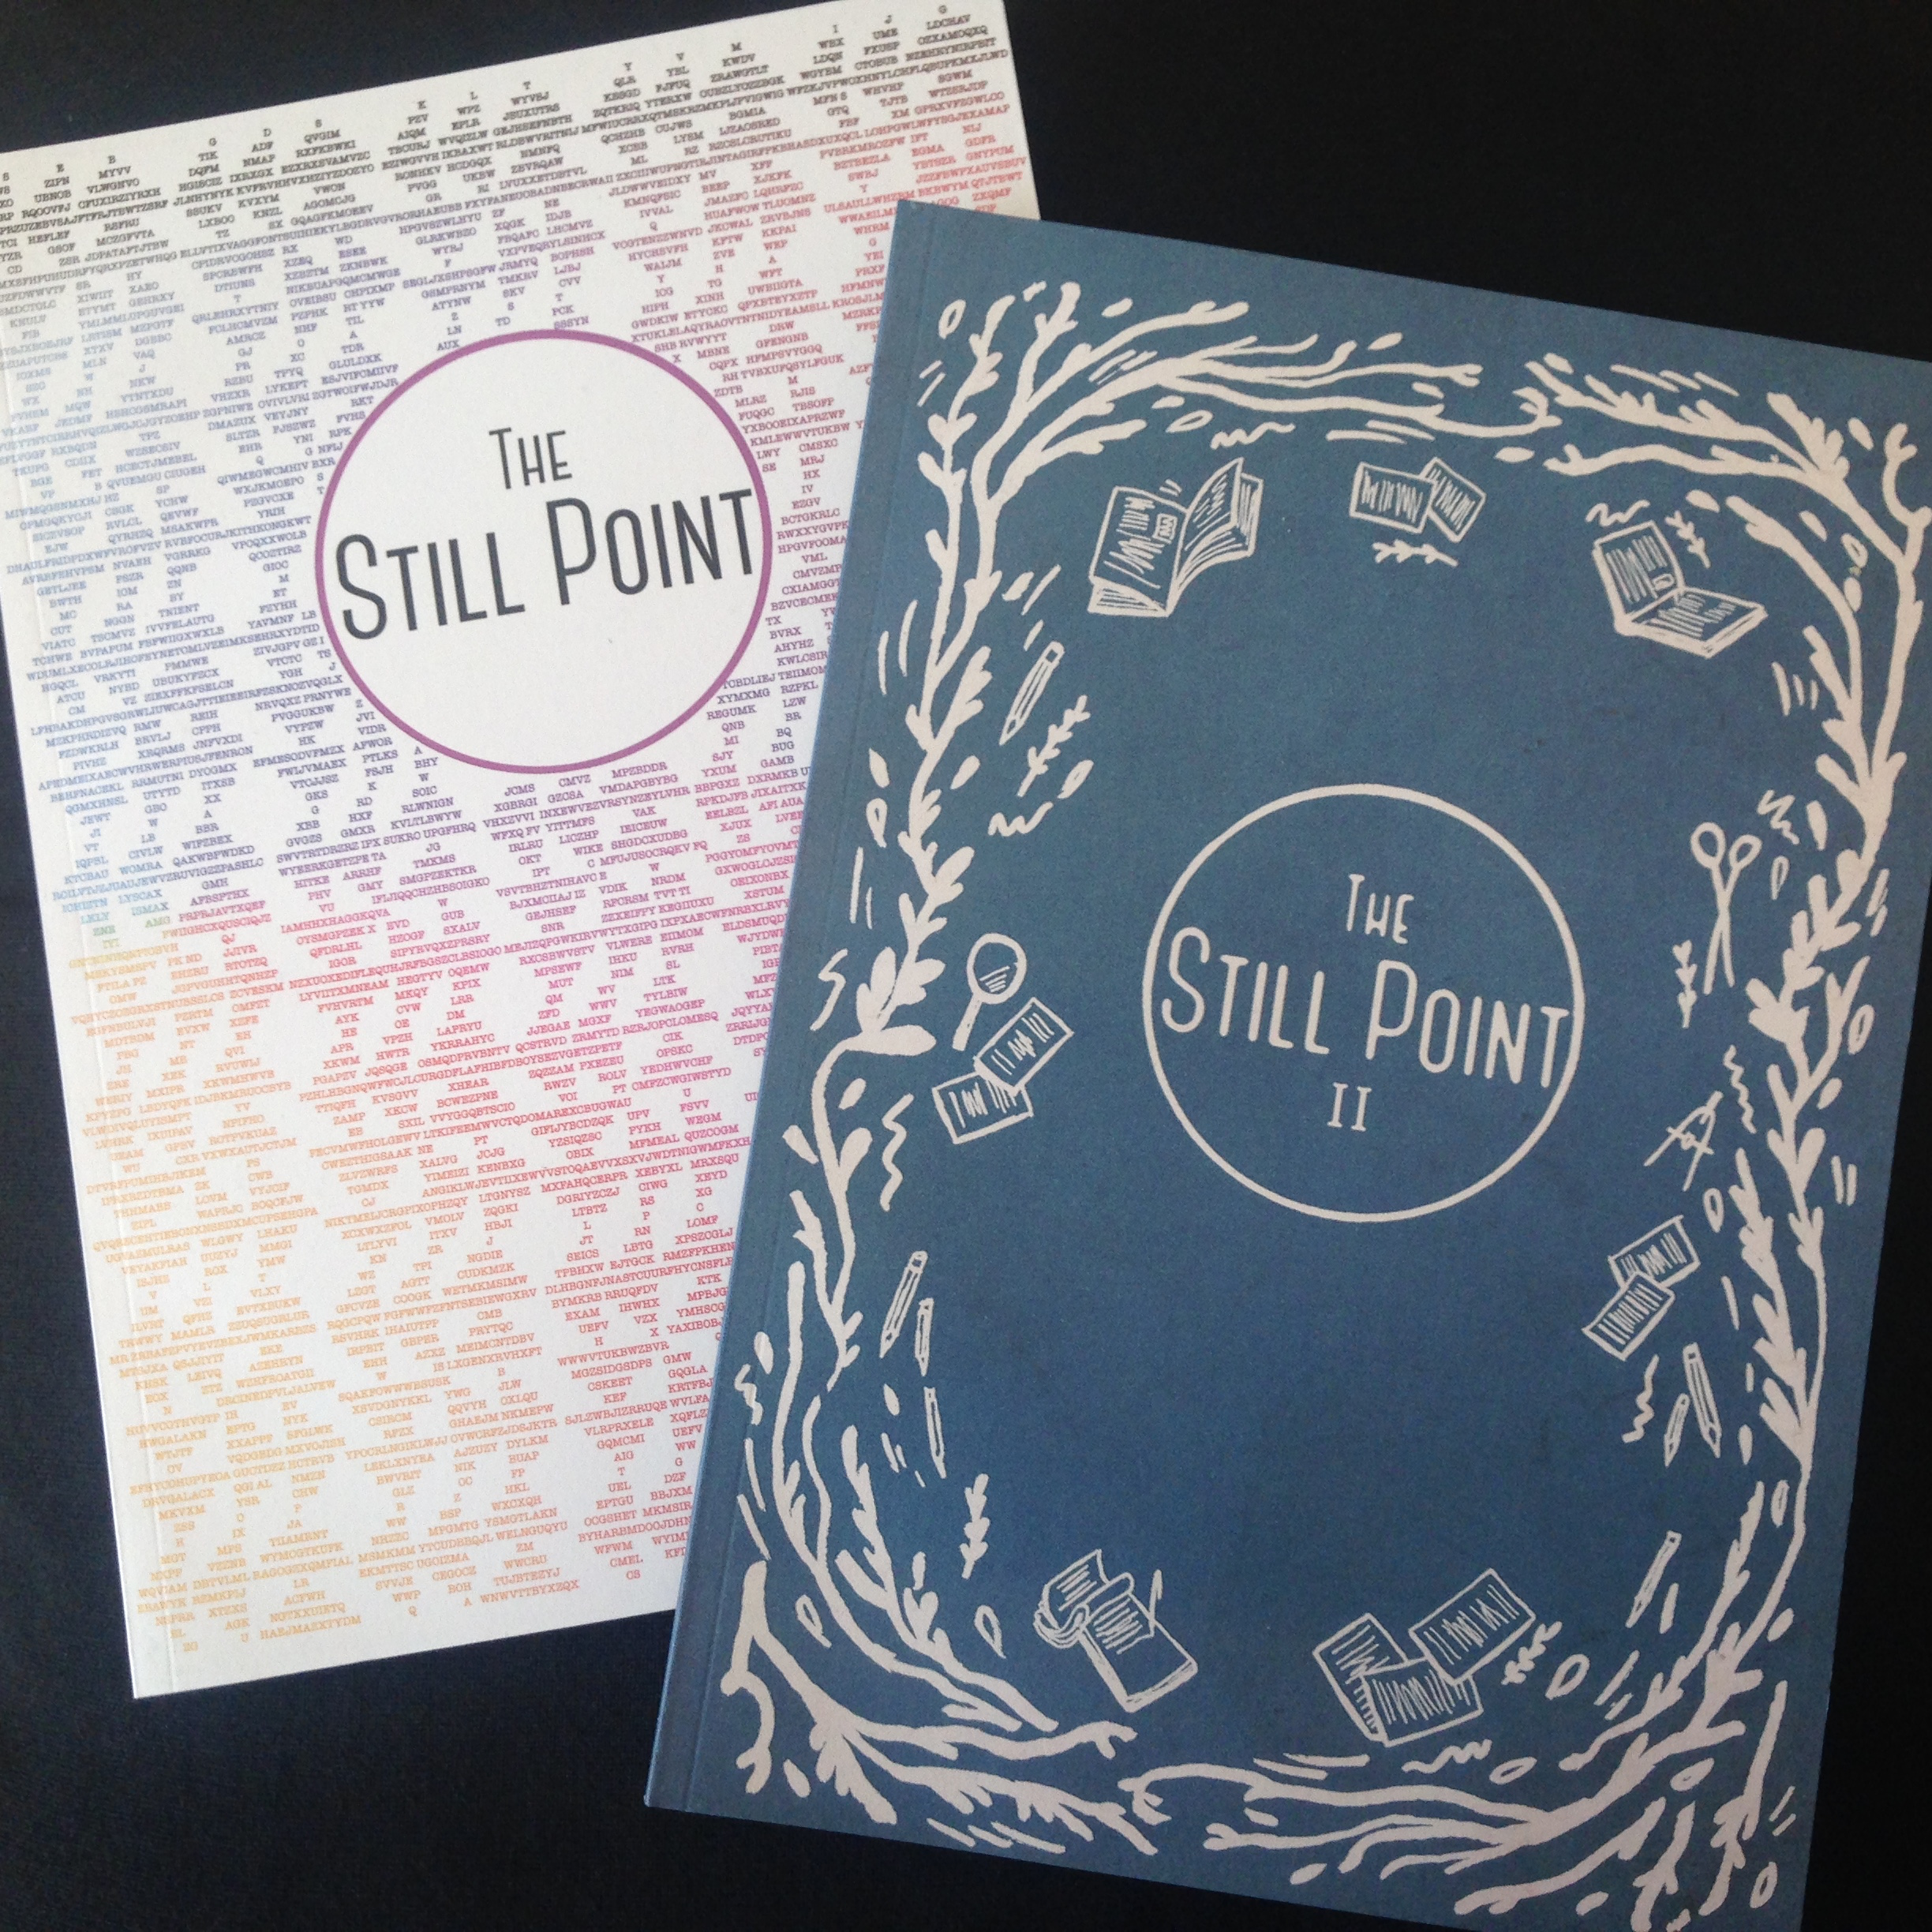 The Still Point Journal print issues. Find them in the Saison Poetry Library, British Library, and London literary events. You can also order your own copy, see The Still Point website.